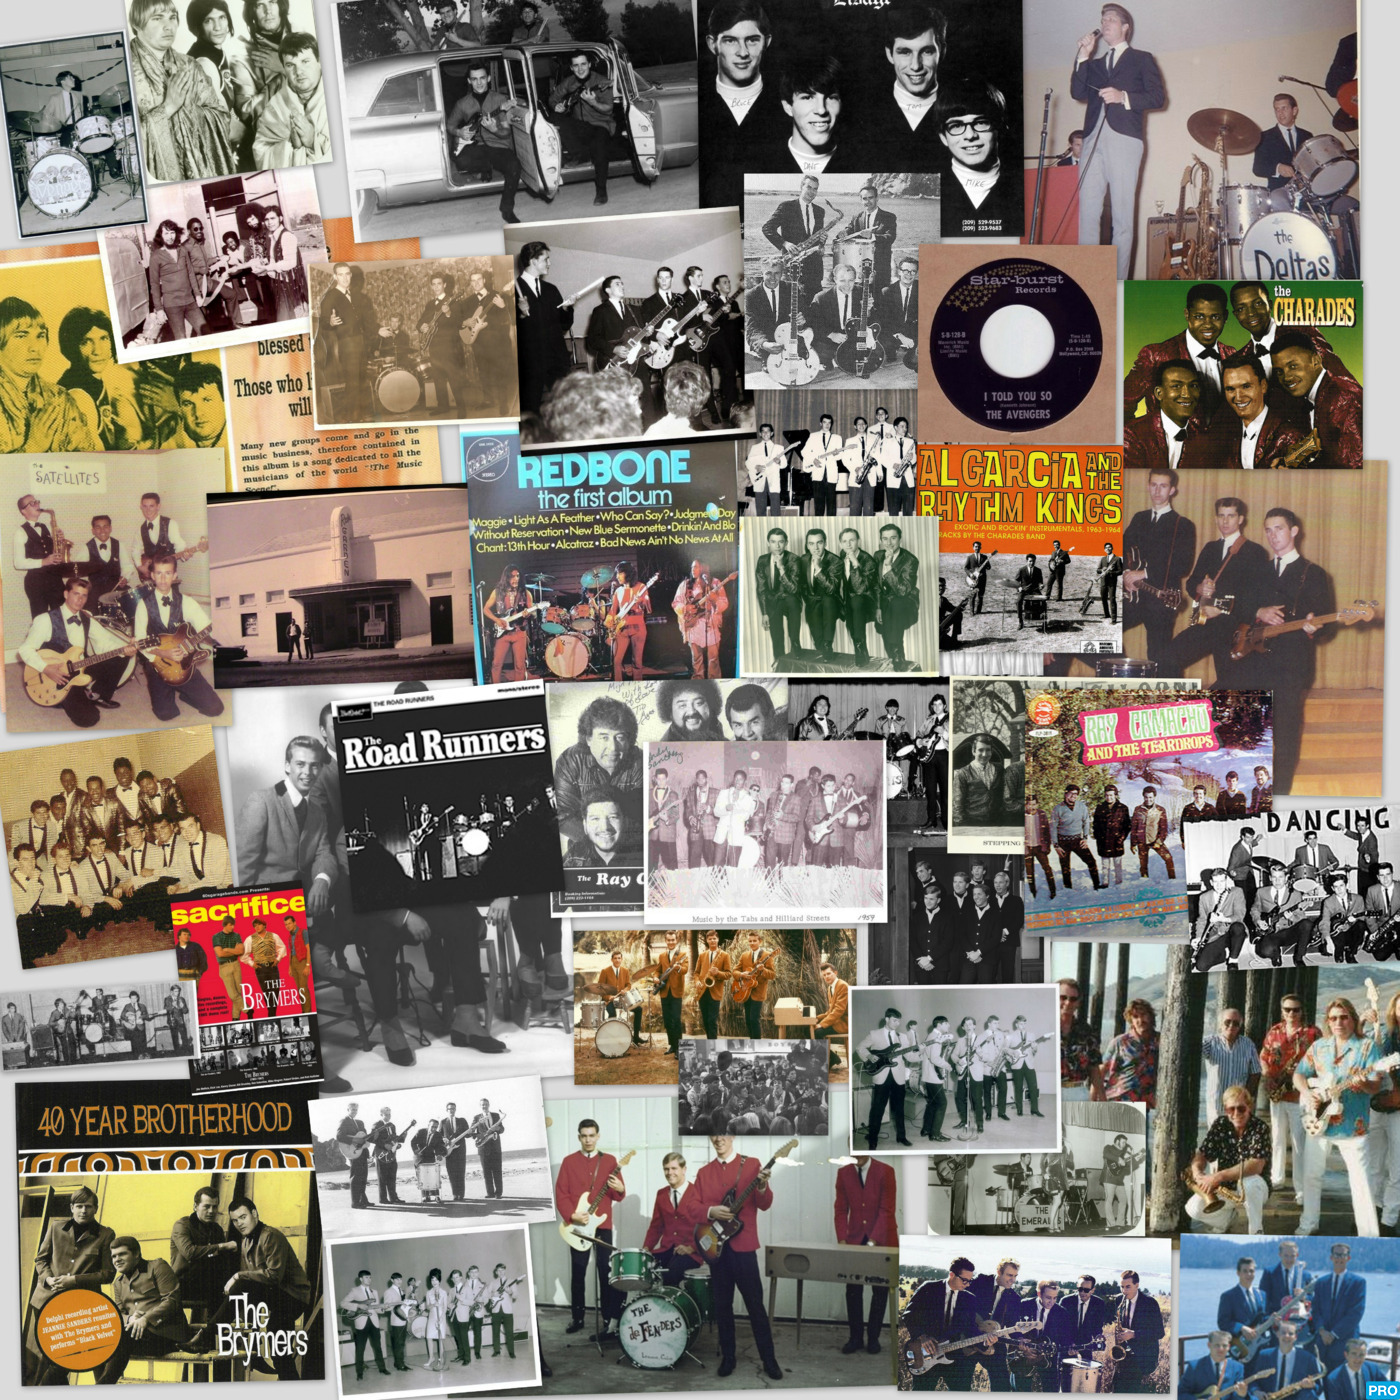 60s music Decade by decade: the essentials i've grown a bit dissatisfied with my ongoing top 100 listsure, i enjoy all of the albums i listed, but there are plenty i could live without on a desert island - i probably shouldn't have included badfinger, and that rod stewart album doesn't entirely live up to its reputation to my ears.